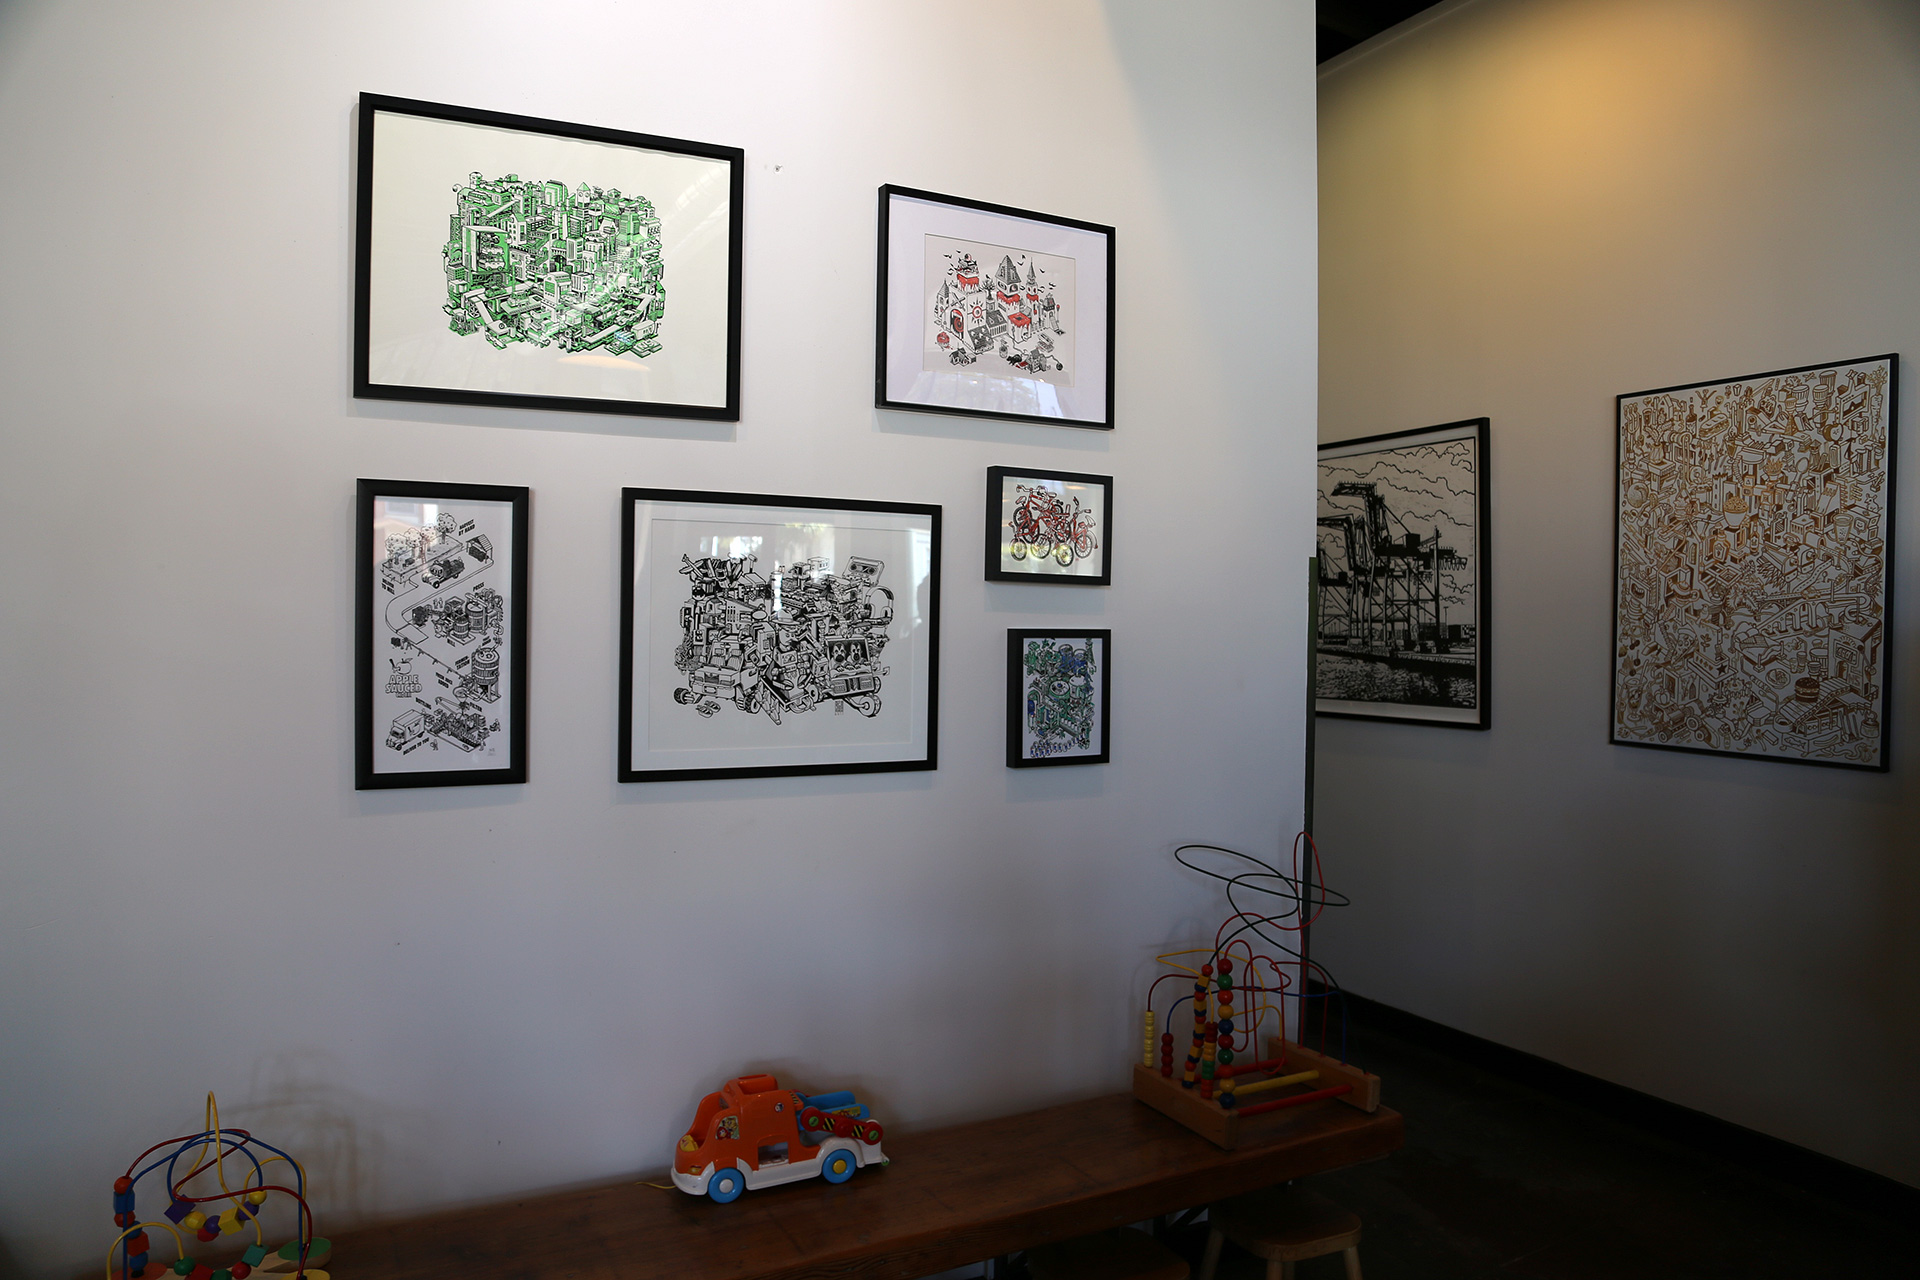 Local artist Nigel Sussman's artwork and kid-friendly space